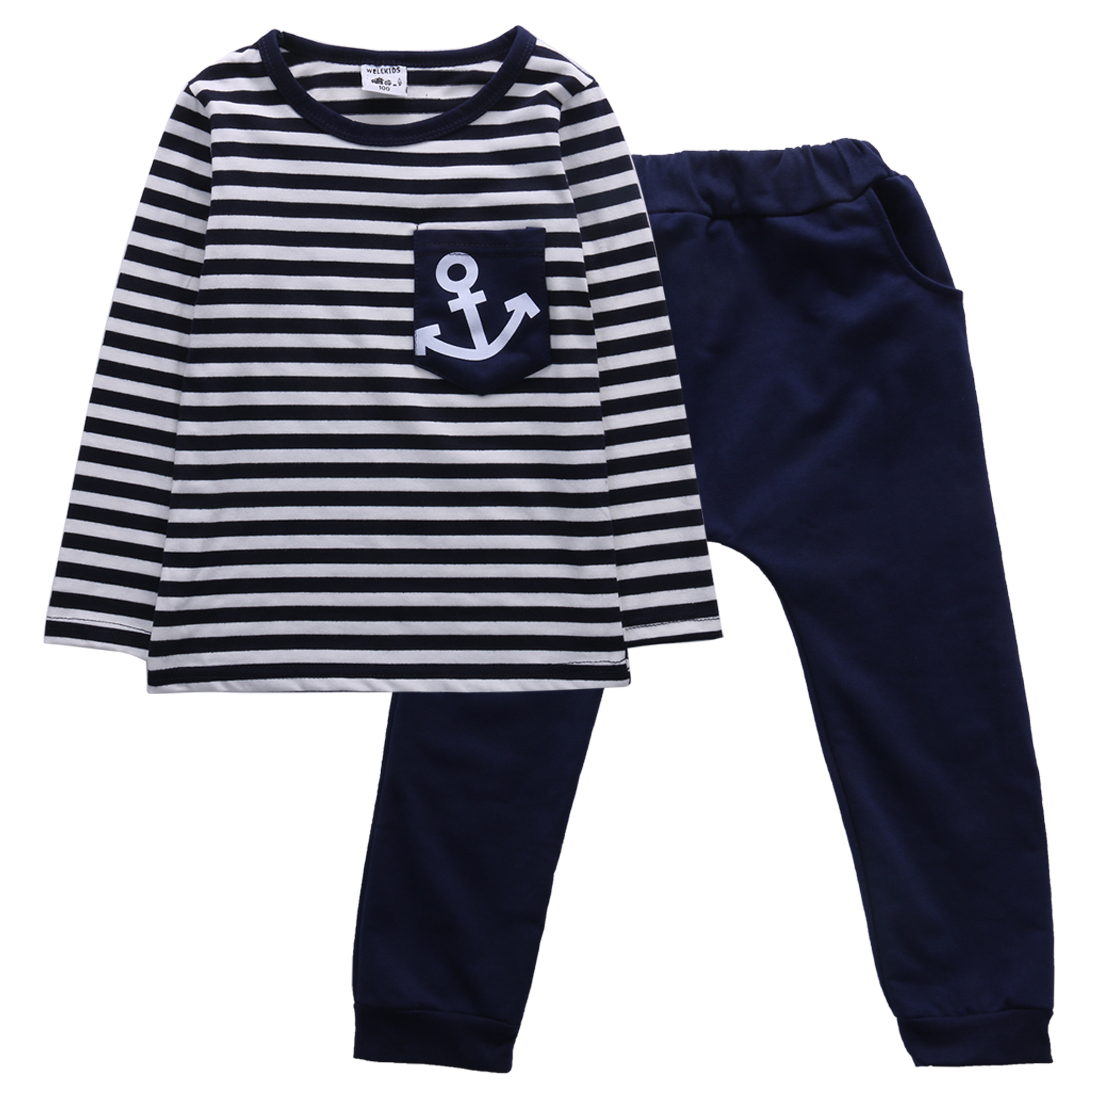 2017 Hot Toddler Kids Baby Boys Clothes Long Sleeve Cotton Striped T-shirt Tops and Pants 2PCS Outfit Children Clothing Set baby boys t shirt children clothing 2017 fashion boys long sleeve tops animal letter kids clothes t shirts for girls sweatshirt